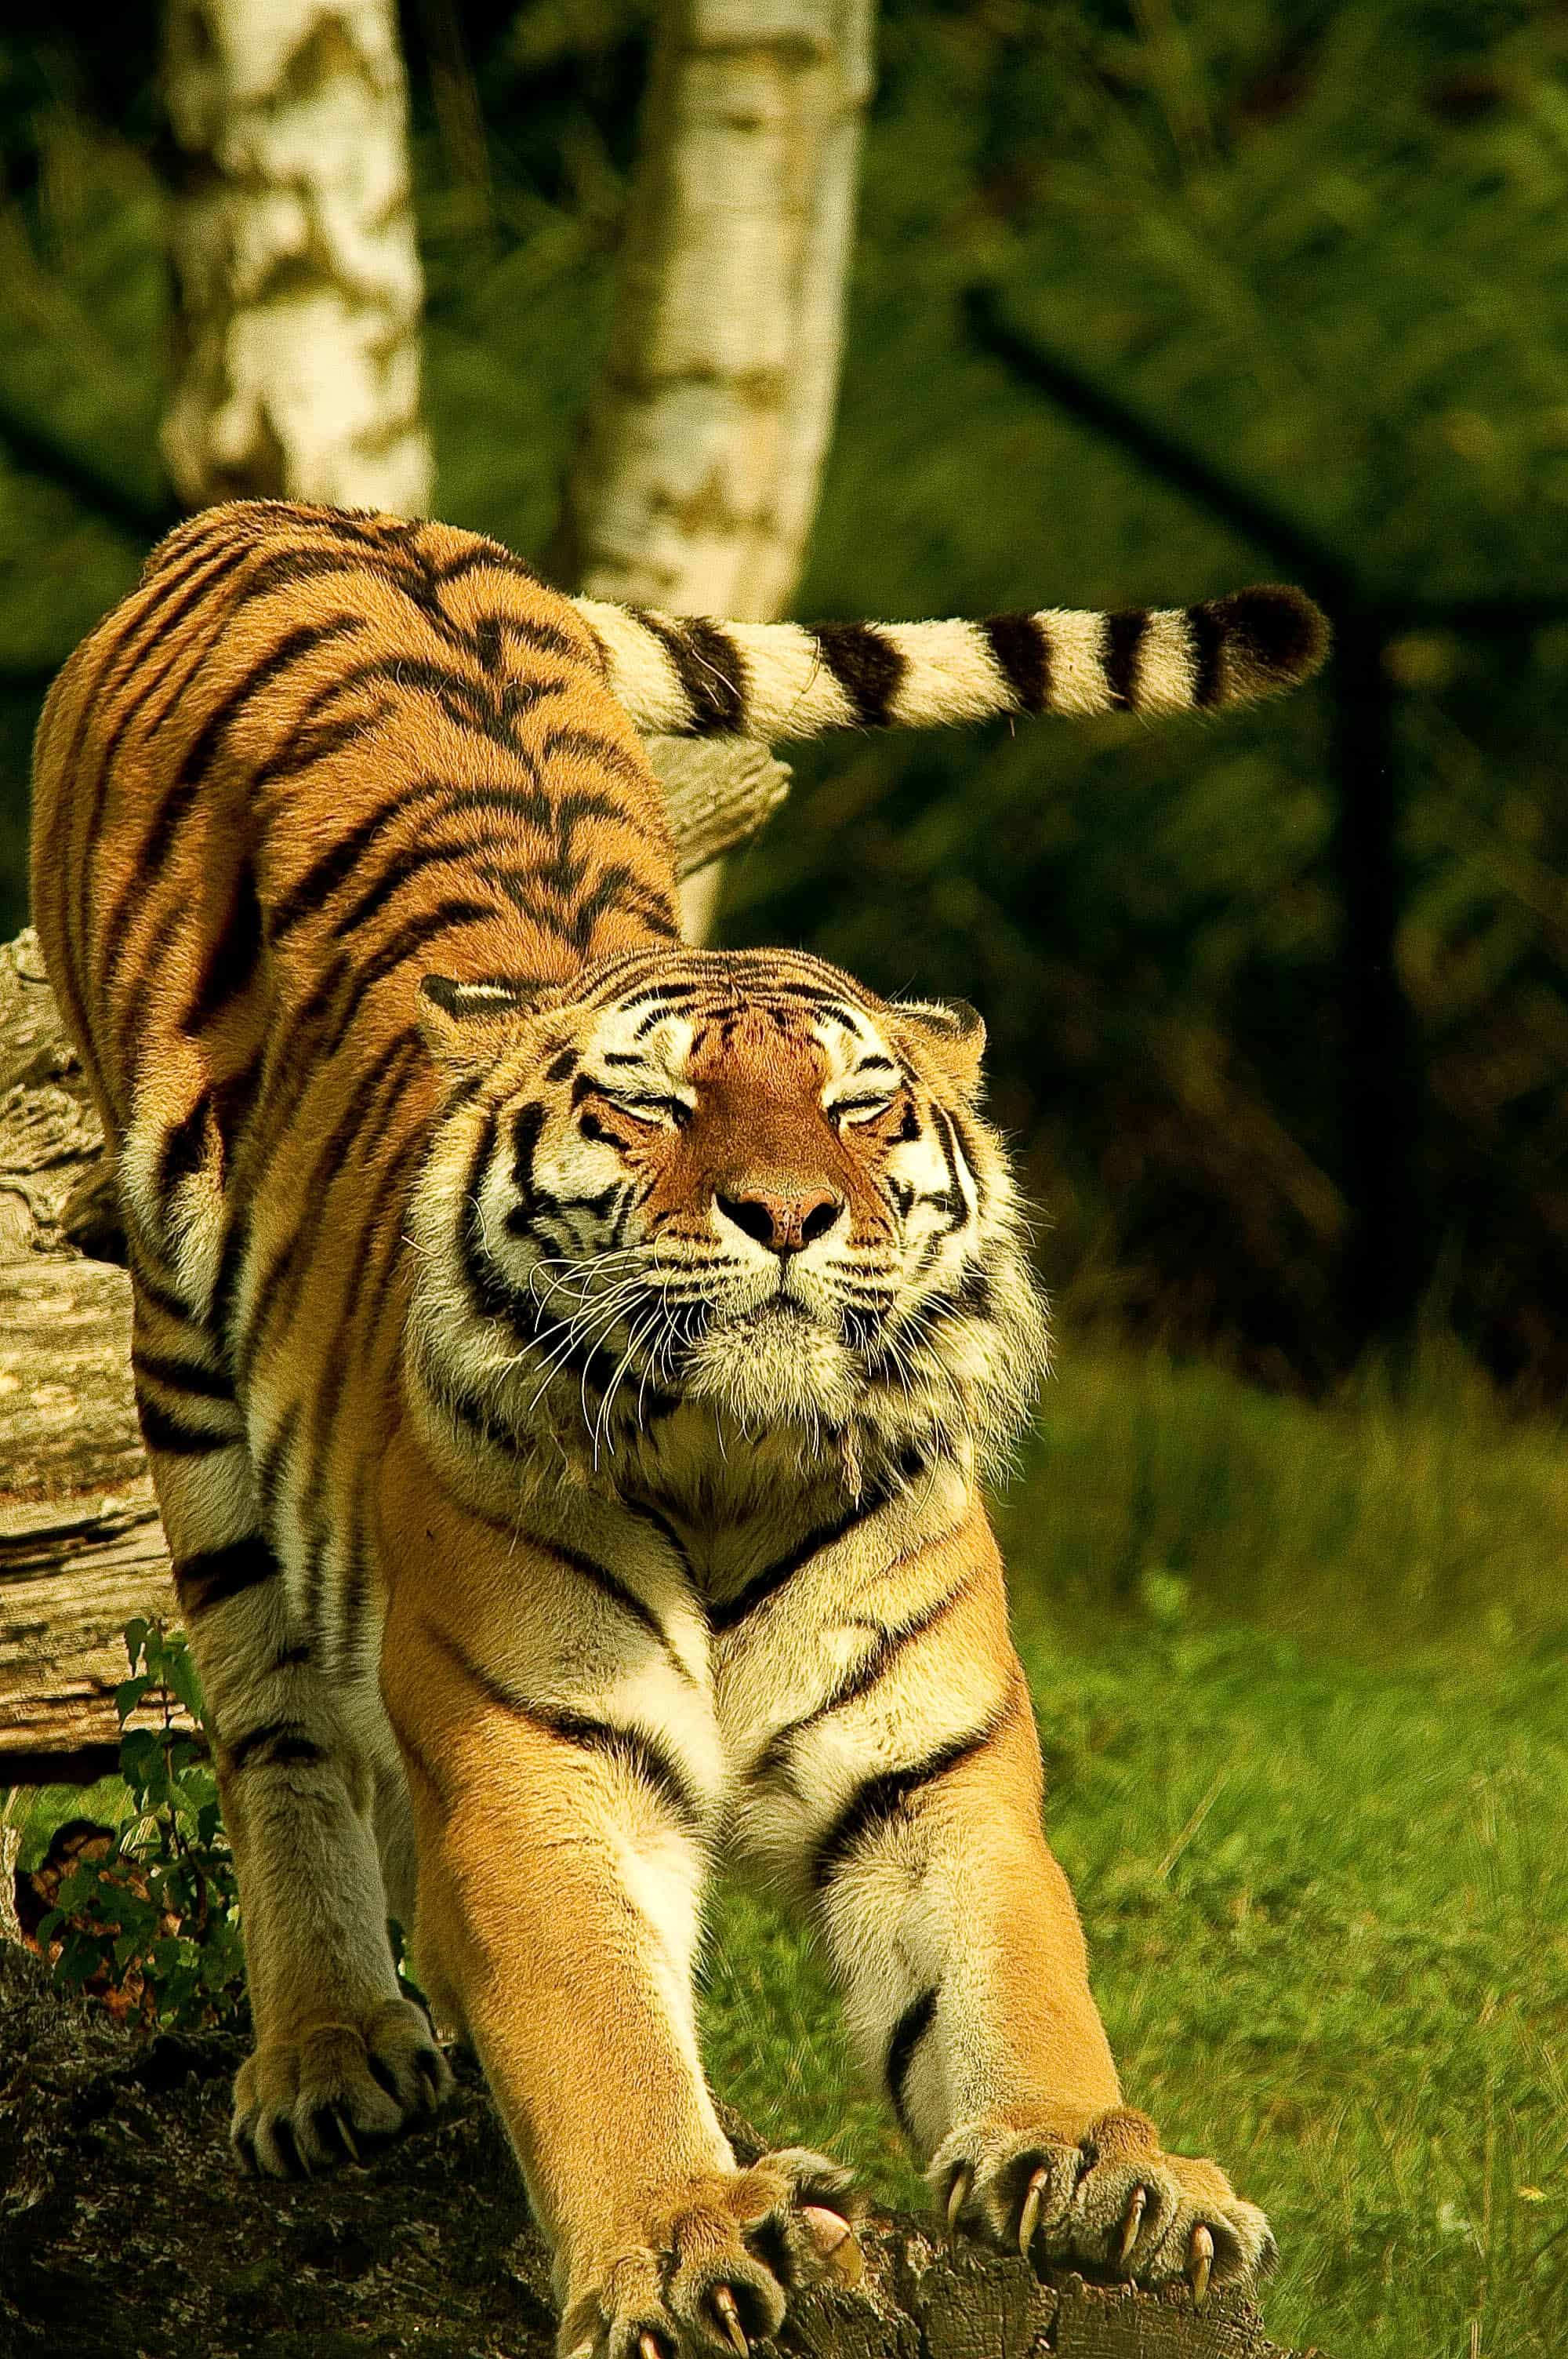 Where is Siberian Tiger found?